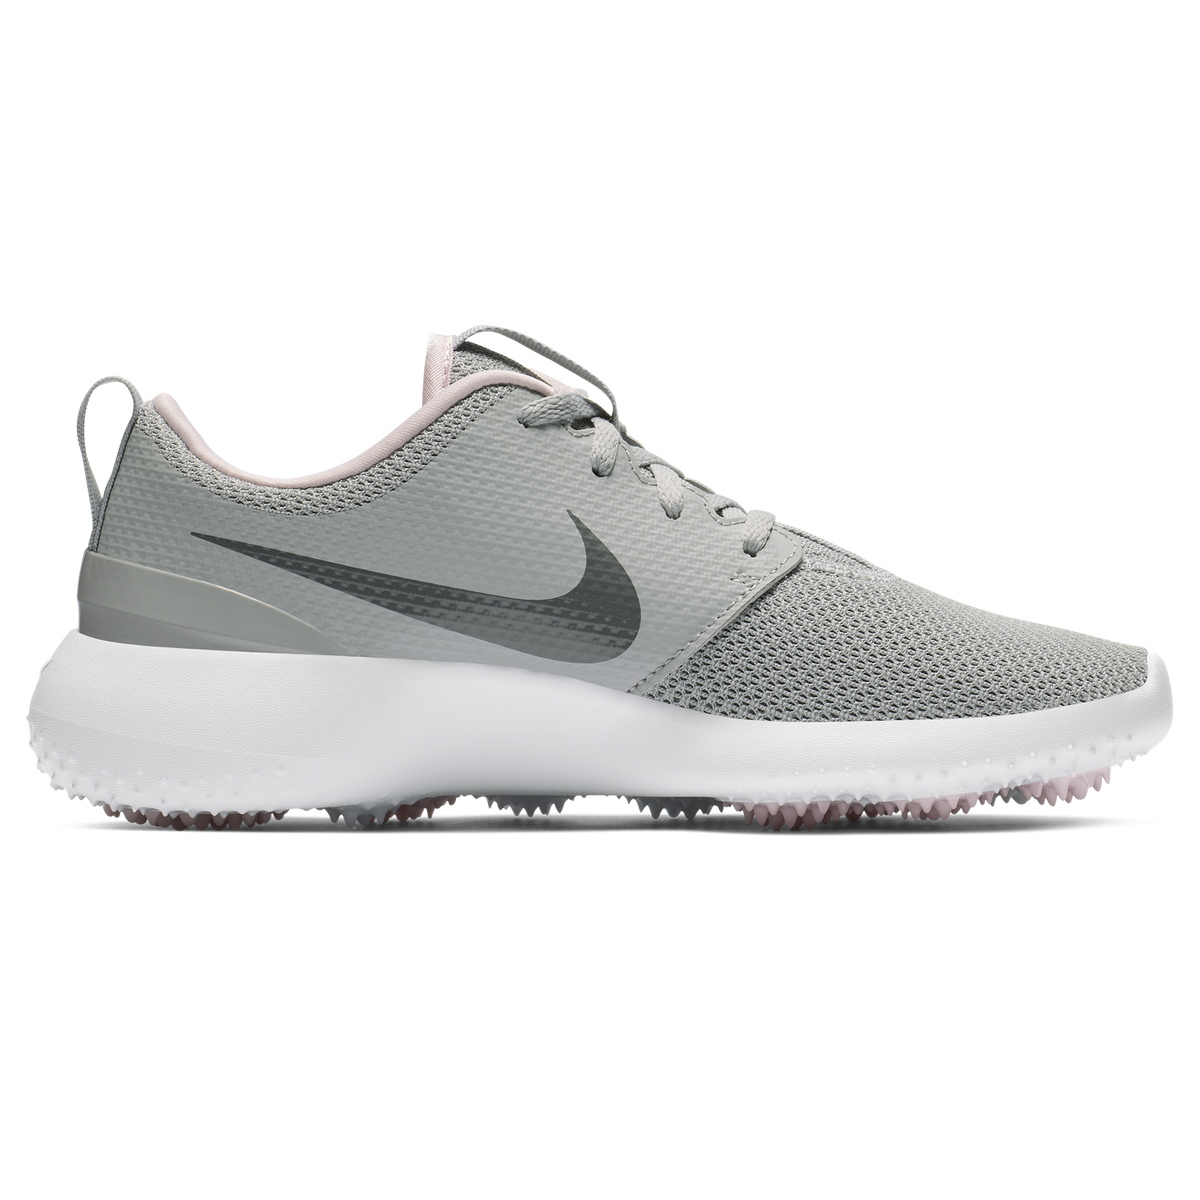 21cc6e3eb17b6 Roshe G Women s Golf Shoe - Grey Pink